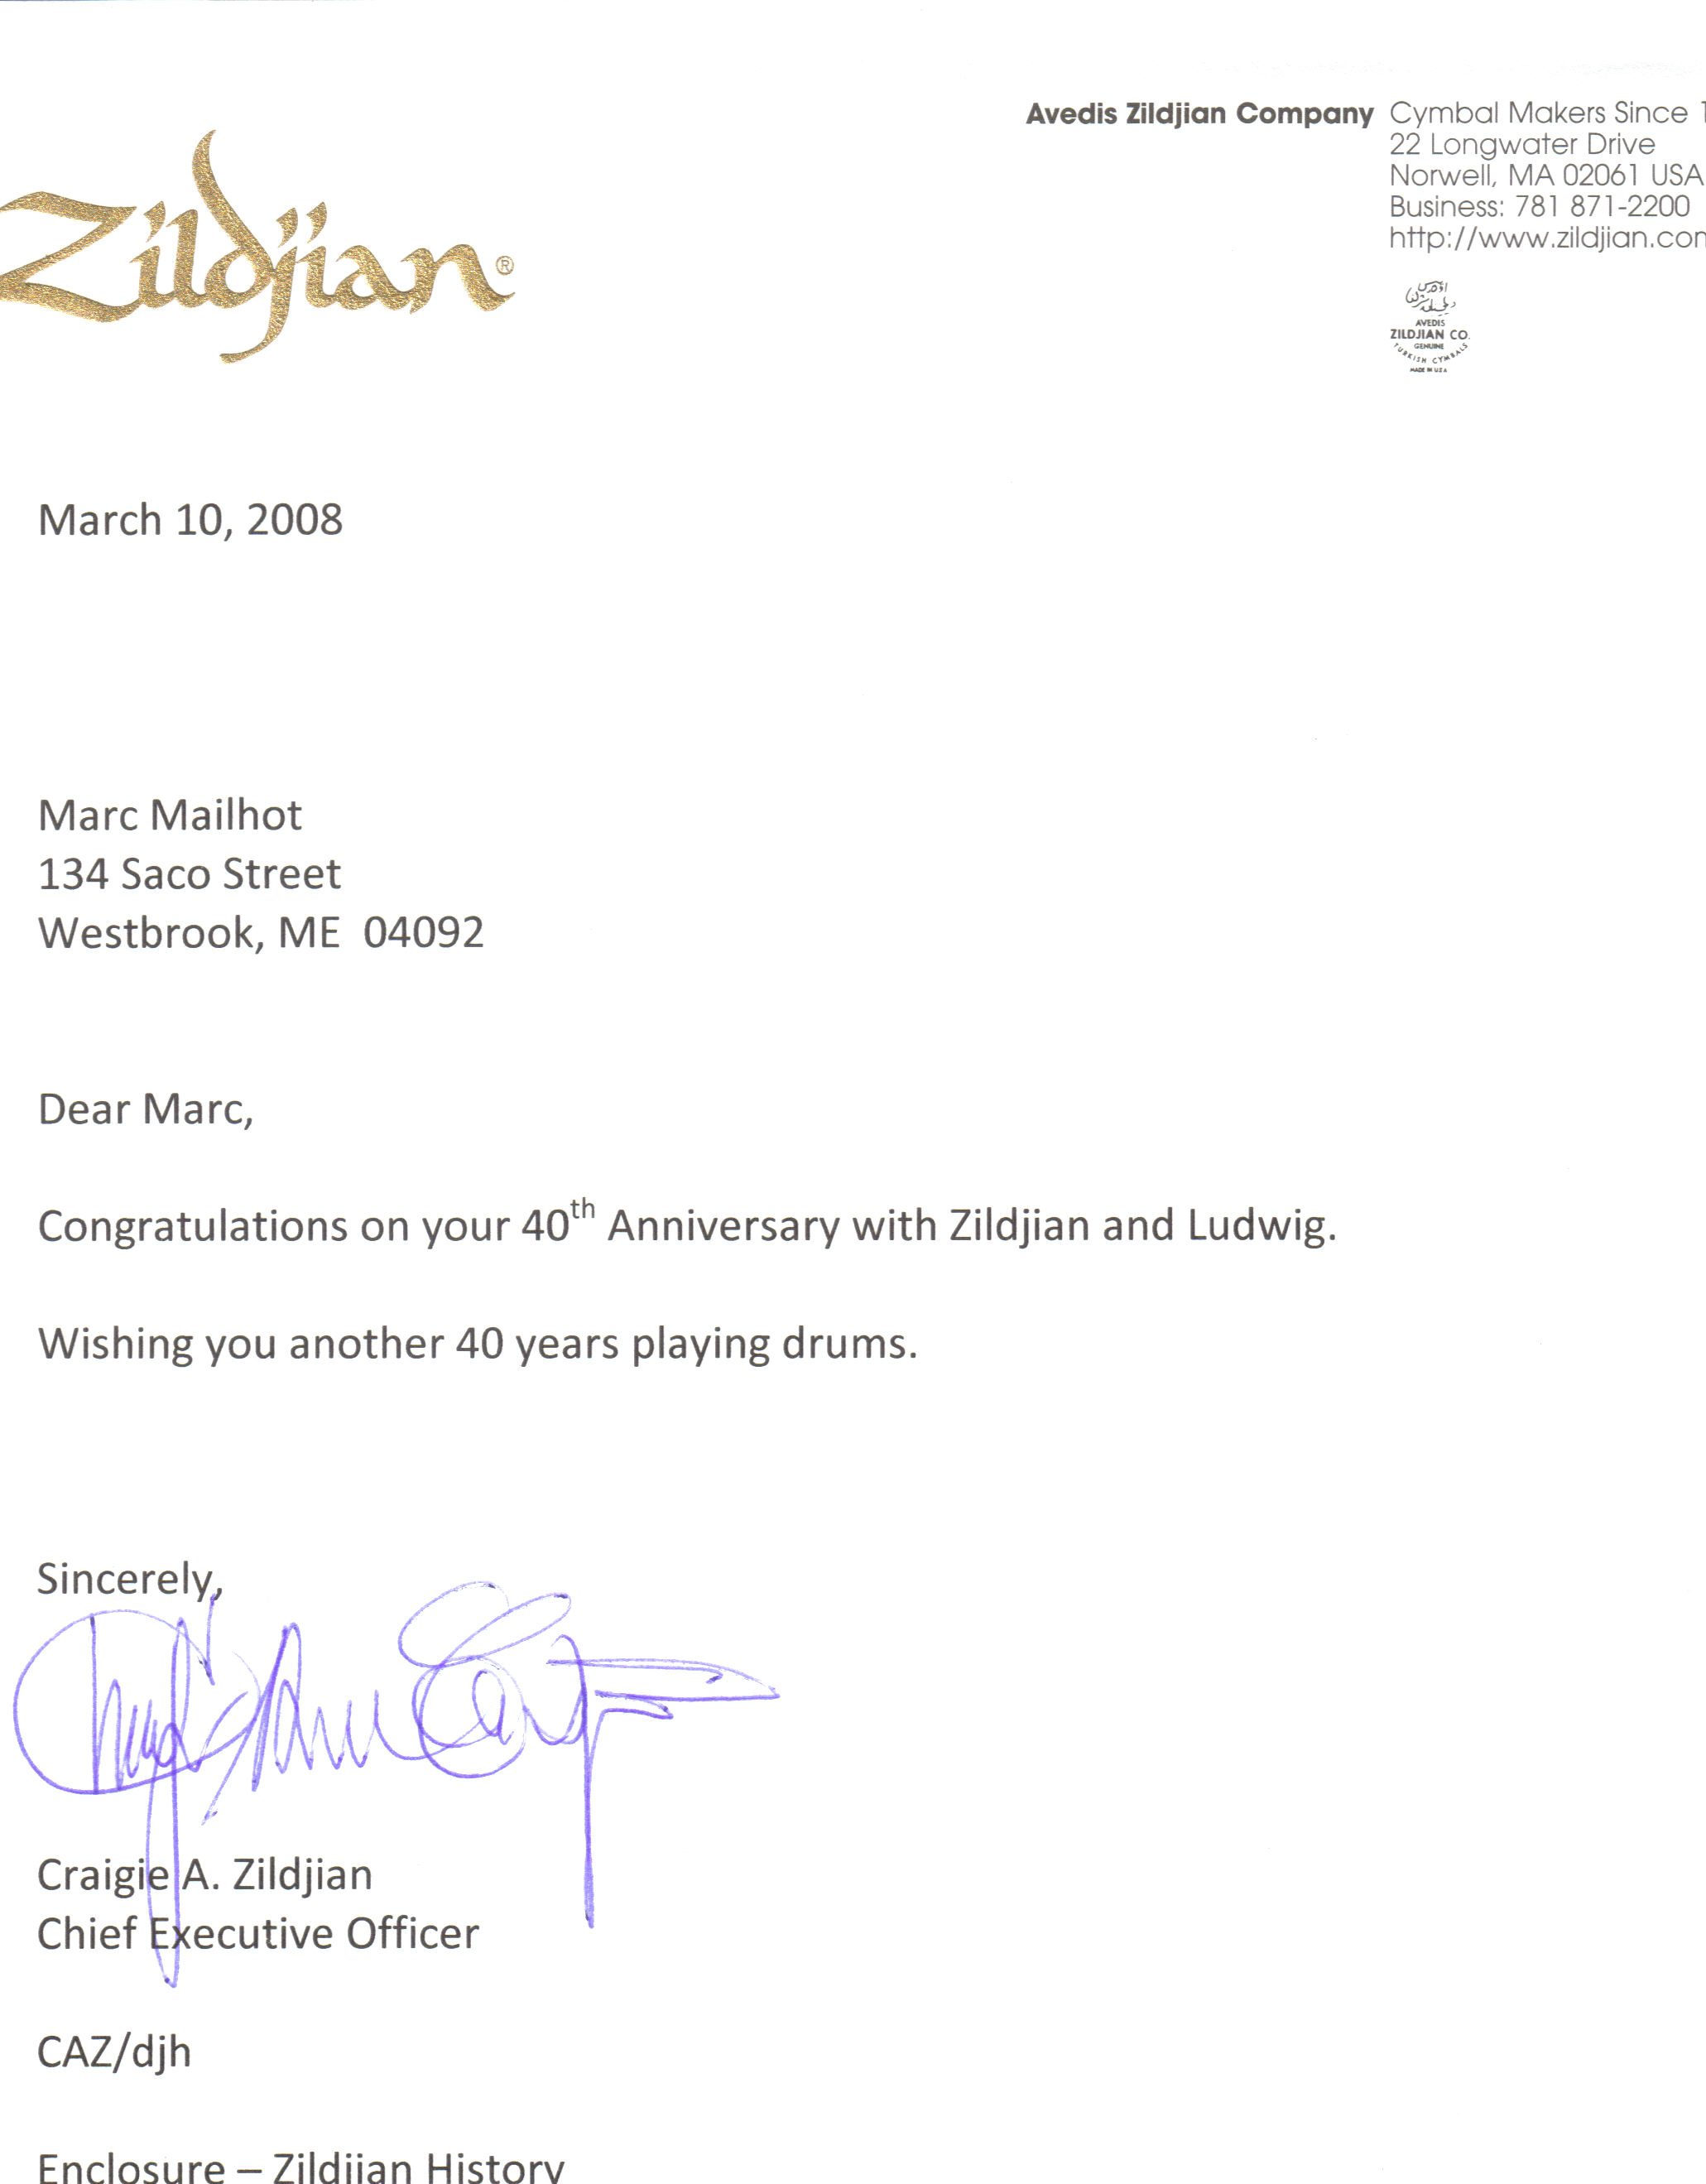 Business anniversary congratulations letter docoments